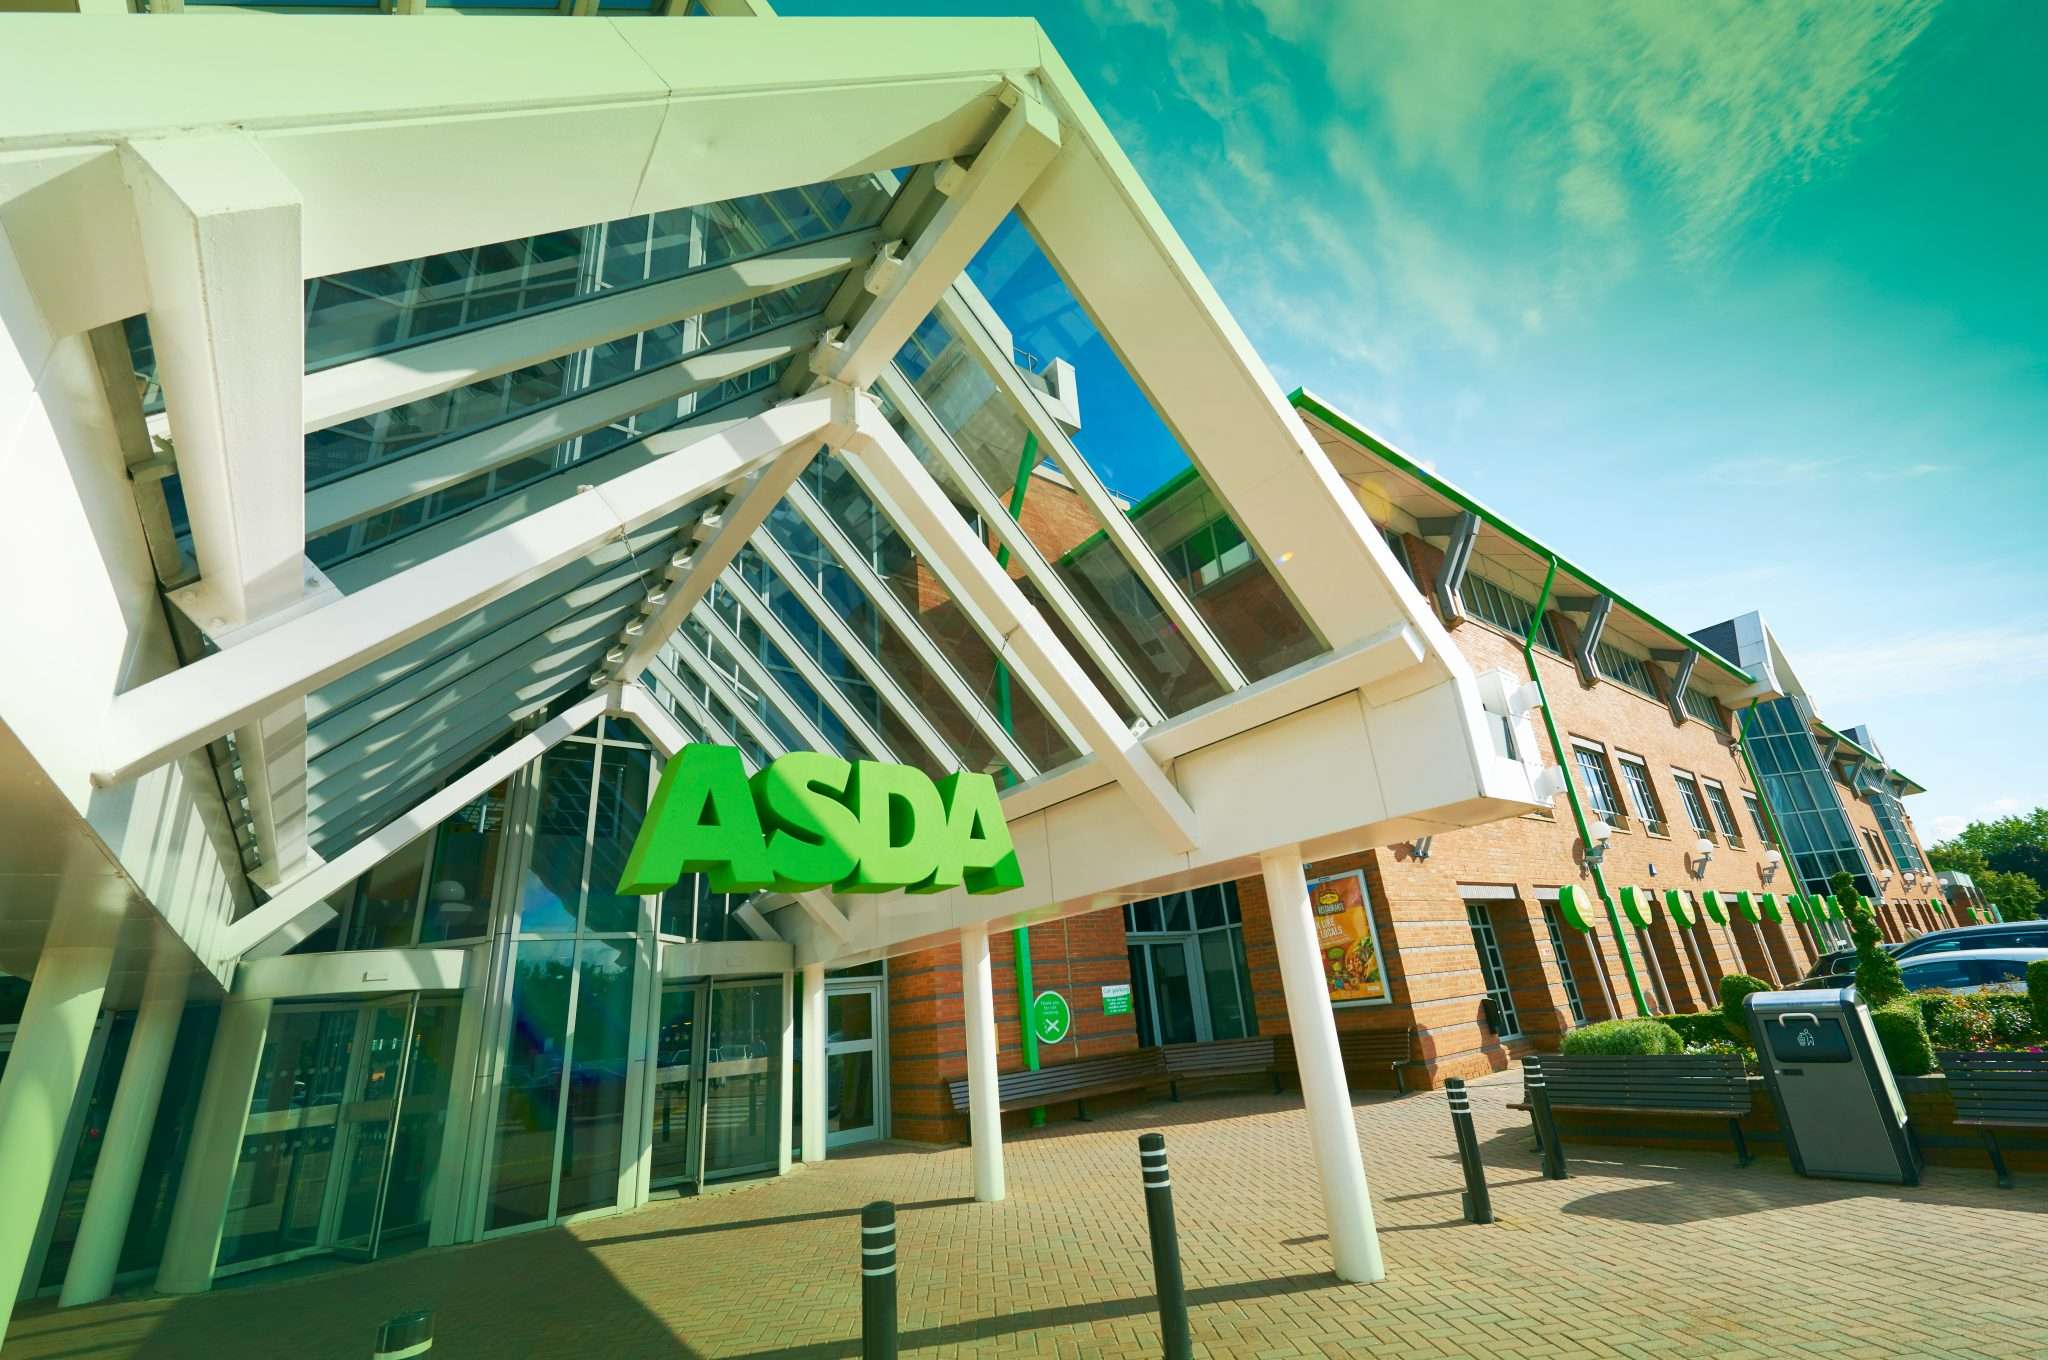 Second-hand clothing in the spotlight at Asda